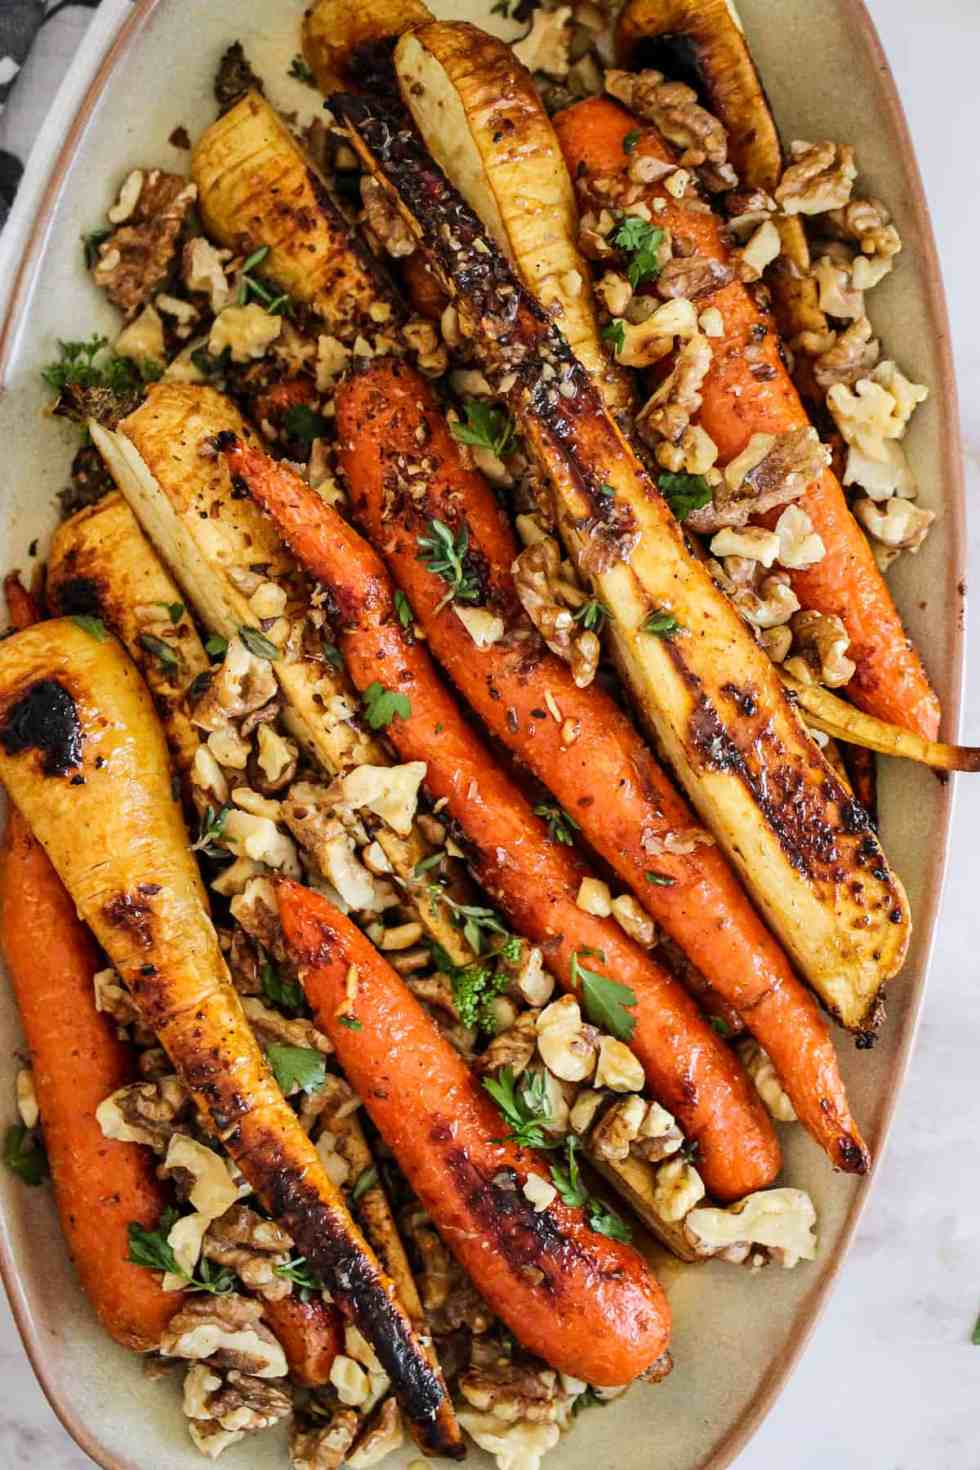 Honey roasted carrots and parsnips on beige serving platter with walnuts and fresh herbs.